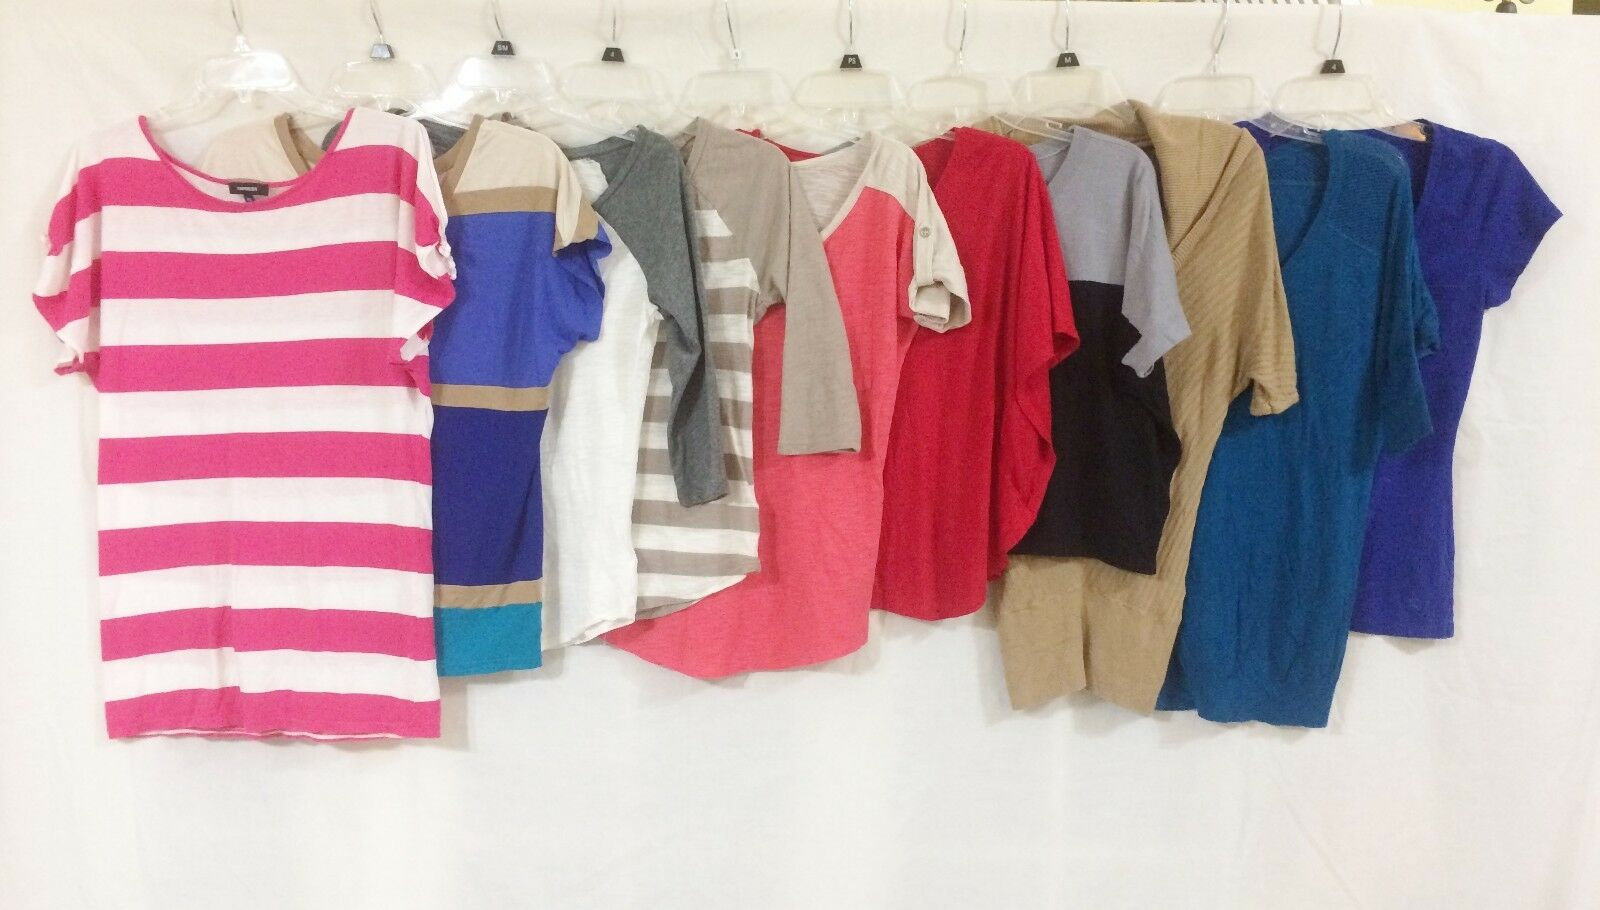 Women's Lot Of 10 Soft Knit Casual Tops All From EXPRESS Size XS EUC